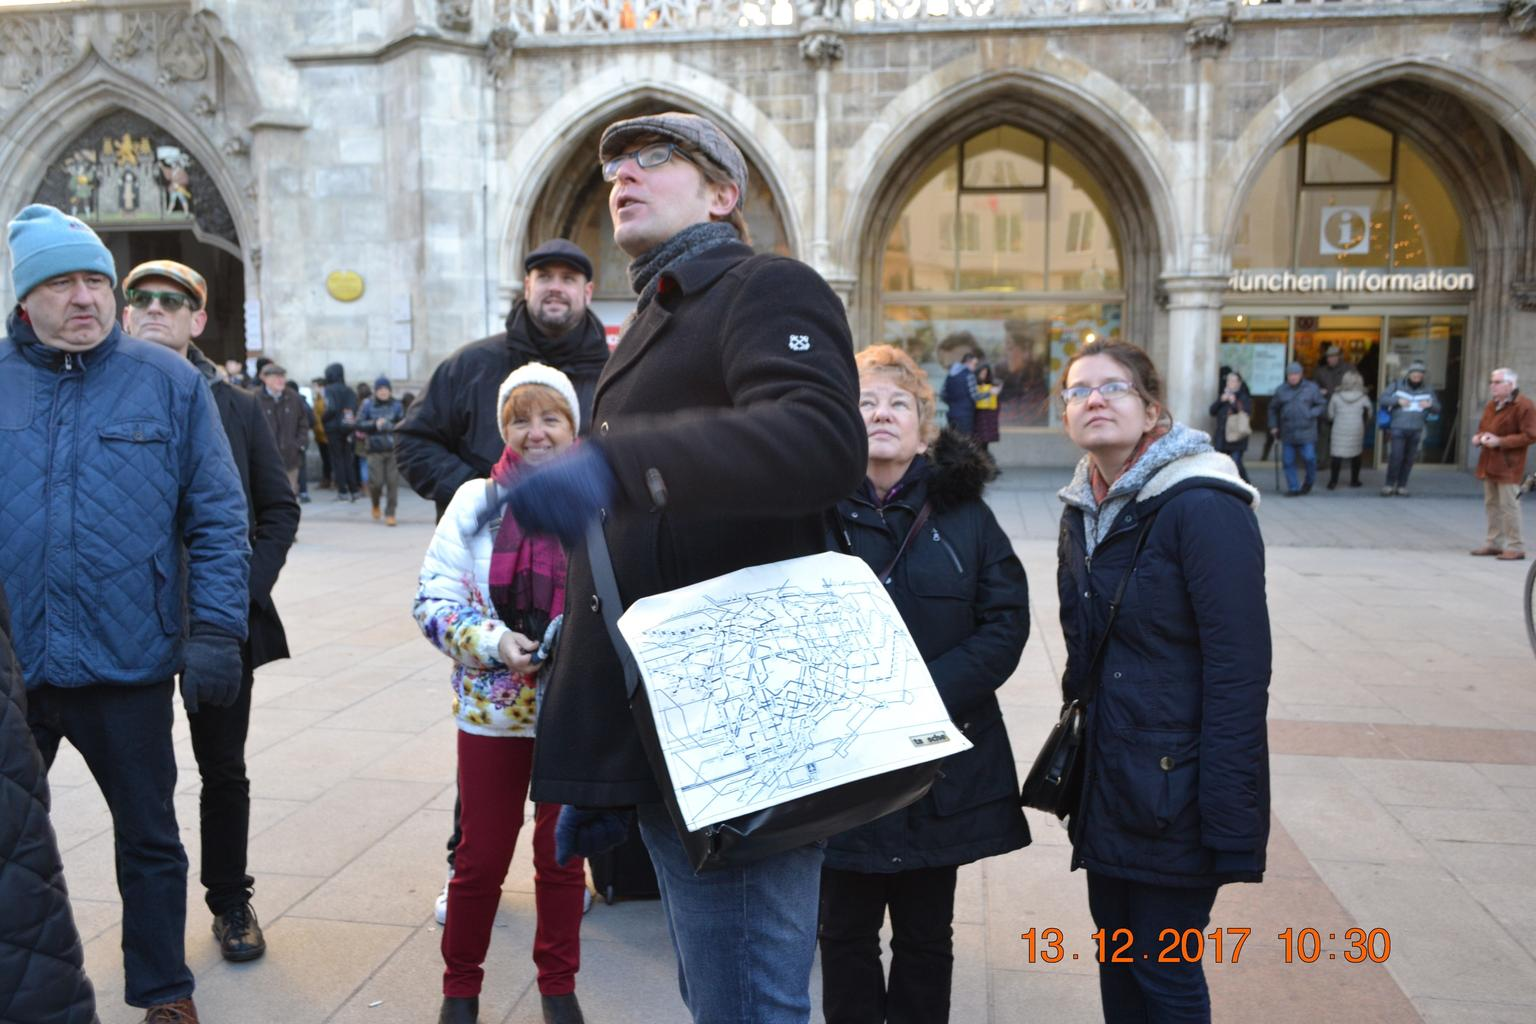 MAIS FOTOS, Third Reich Walking Tour: Historic Facts and Sites in Munich